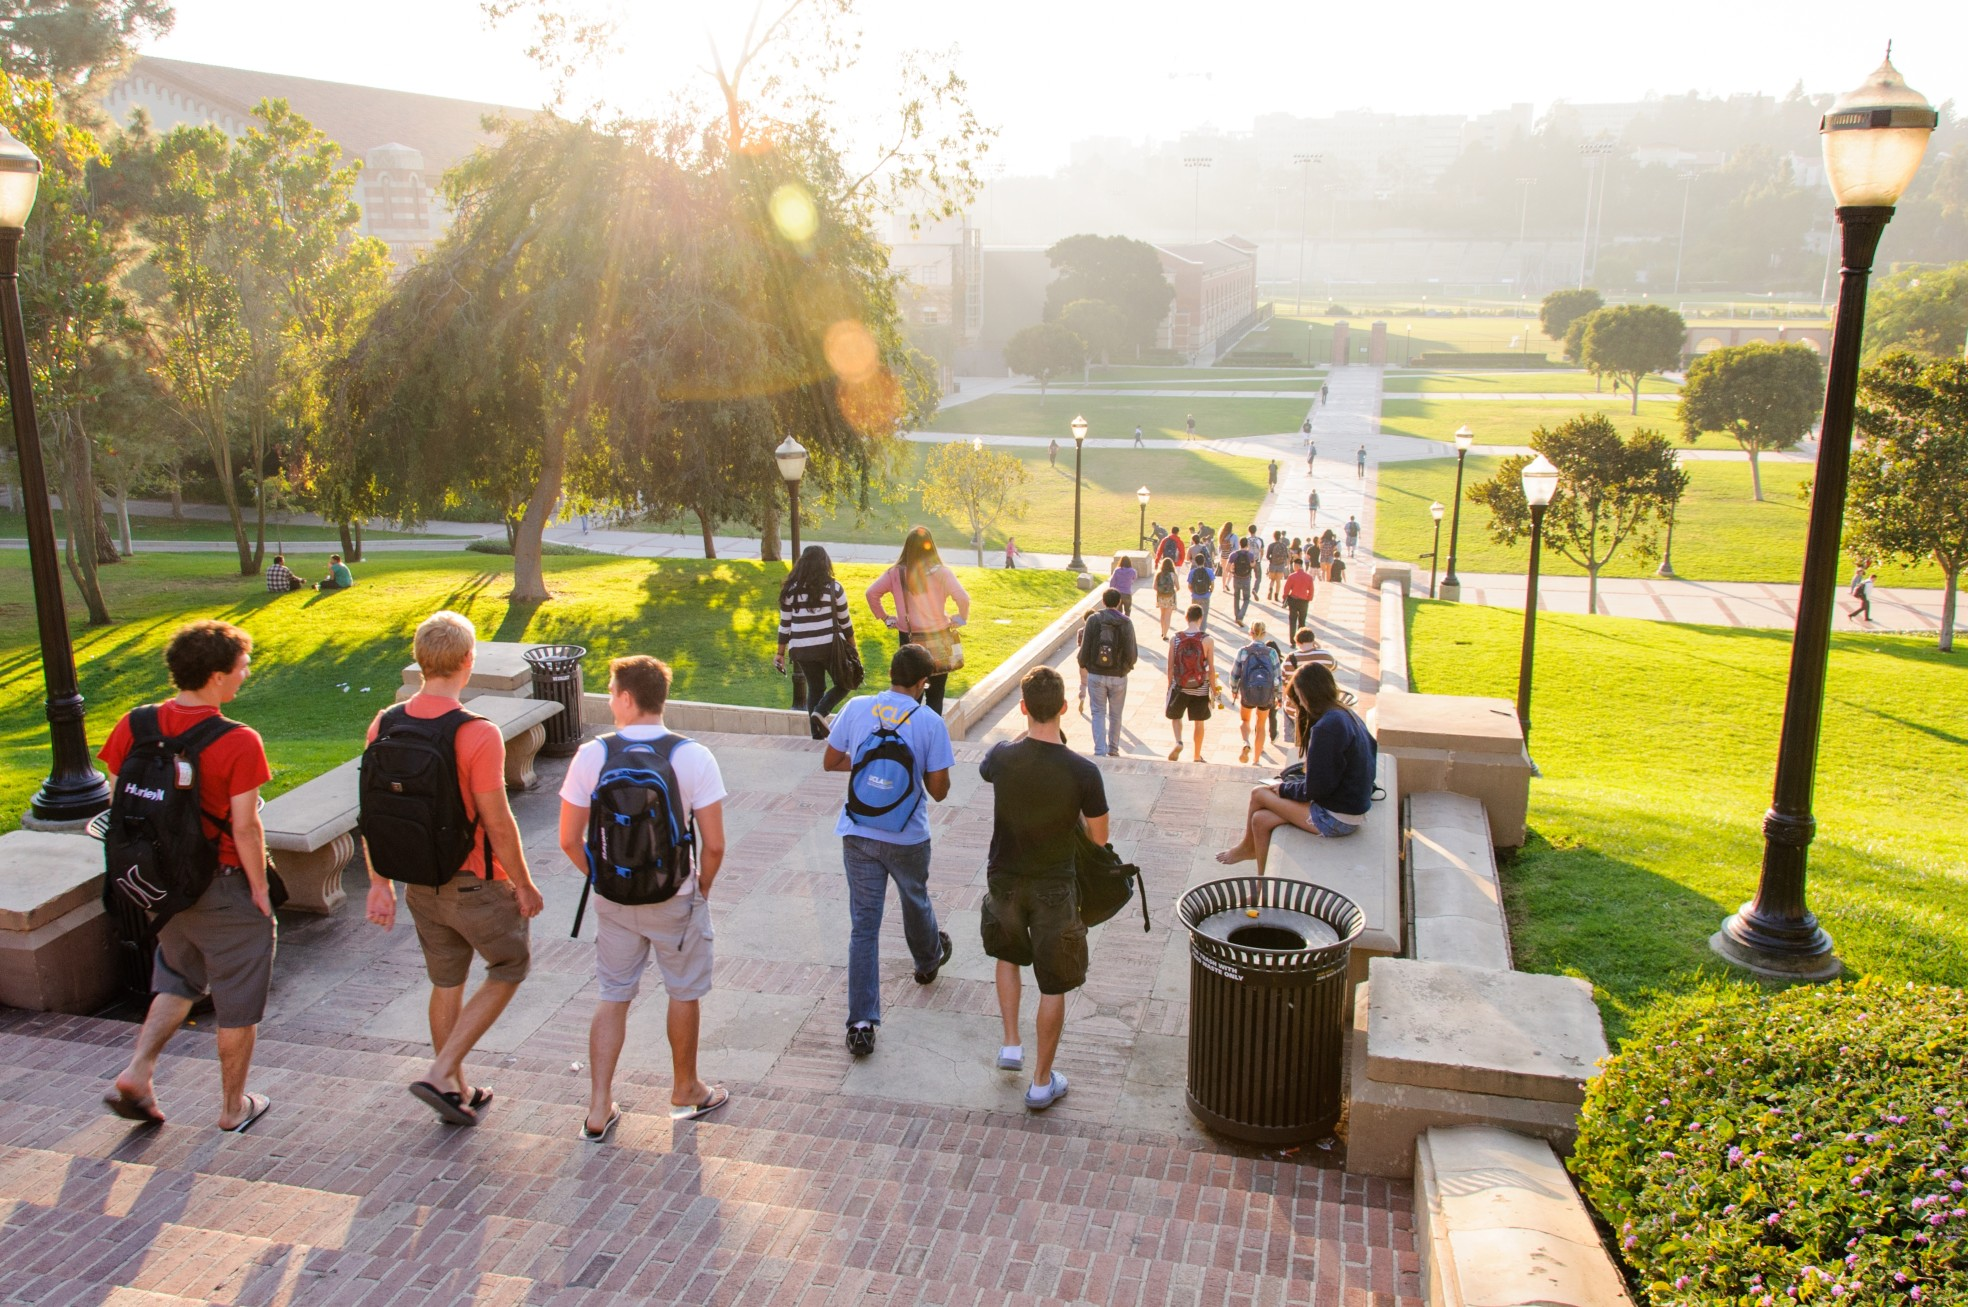 students-walking-home-late-afternoon-at-the-ucla-campus_t20_bAgn9g